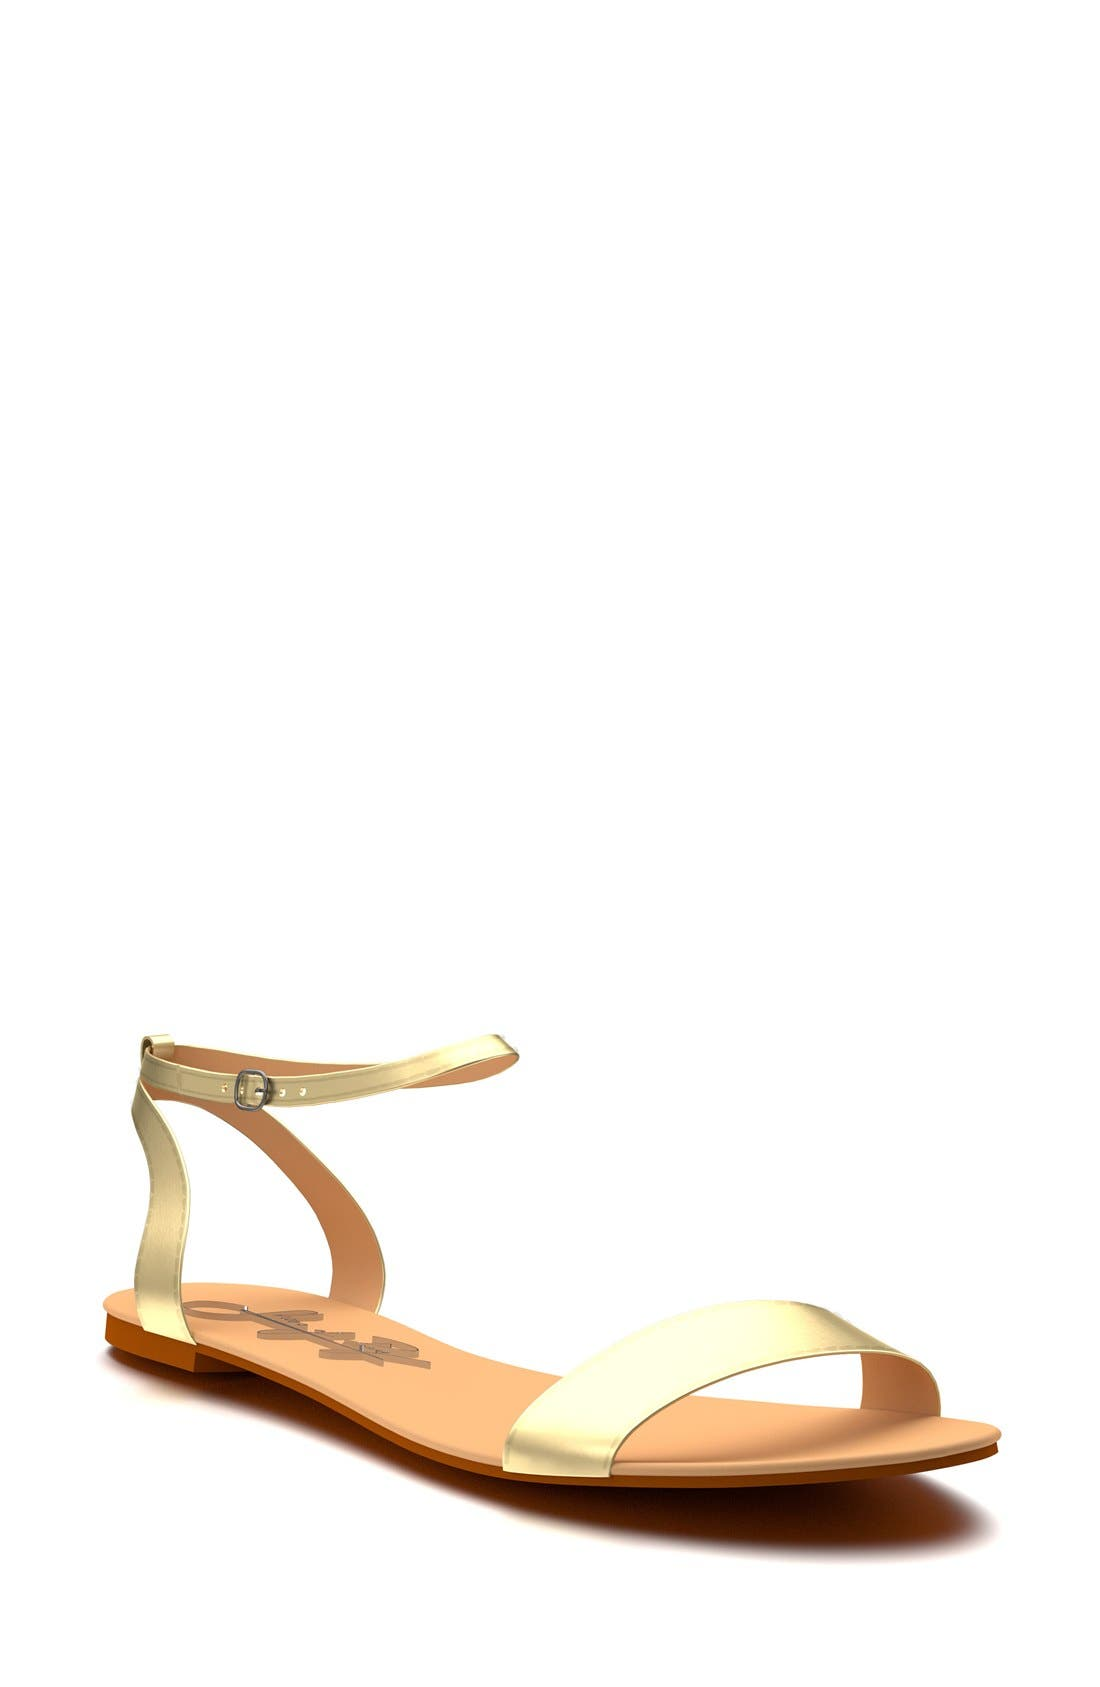 Shoes of Prey Metallic Ankle Strap Sandal (Women)